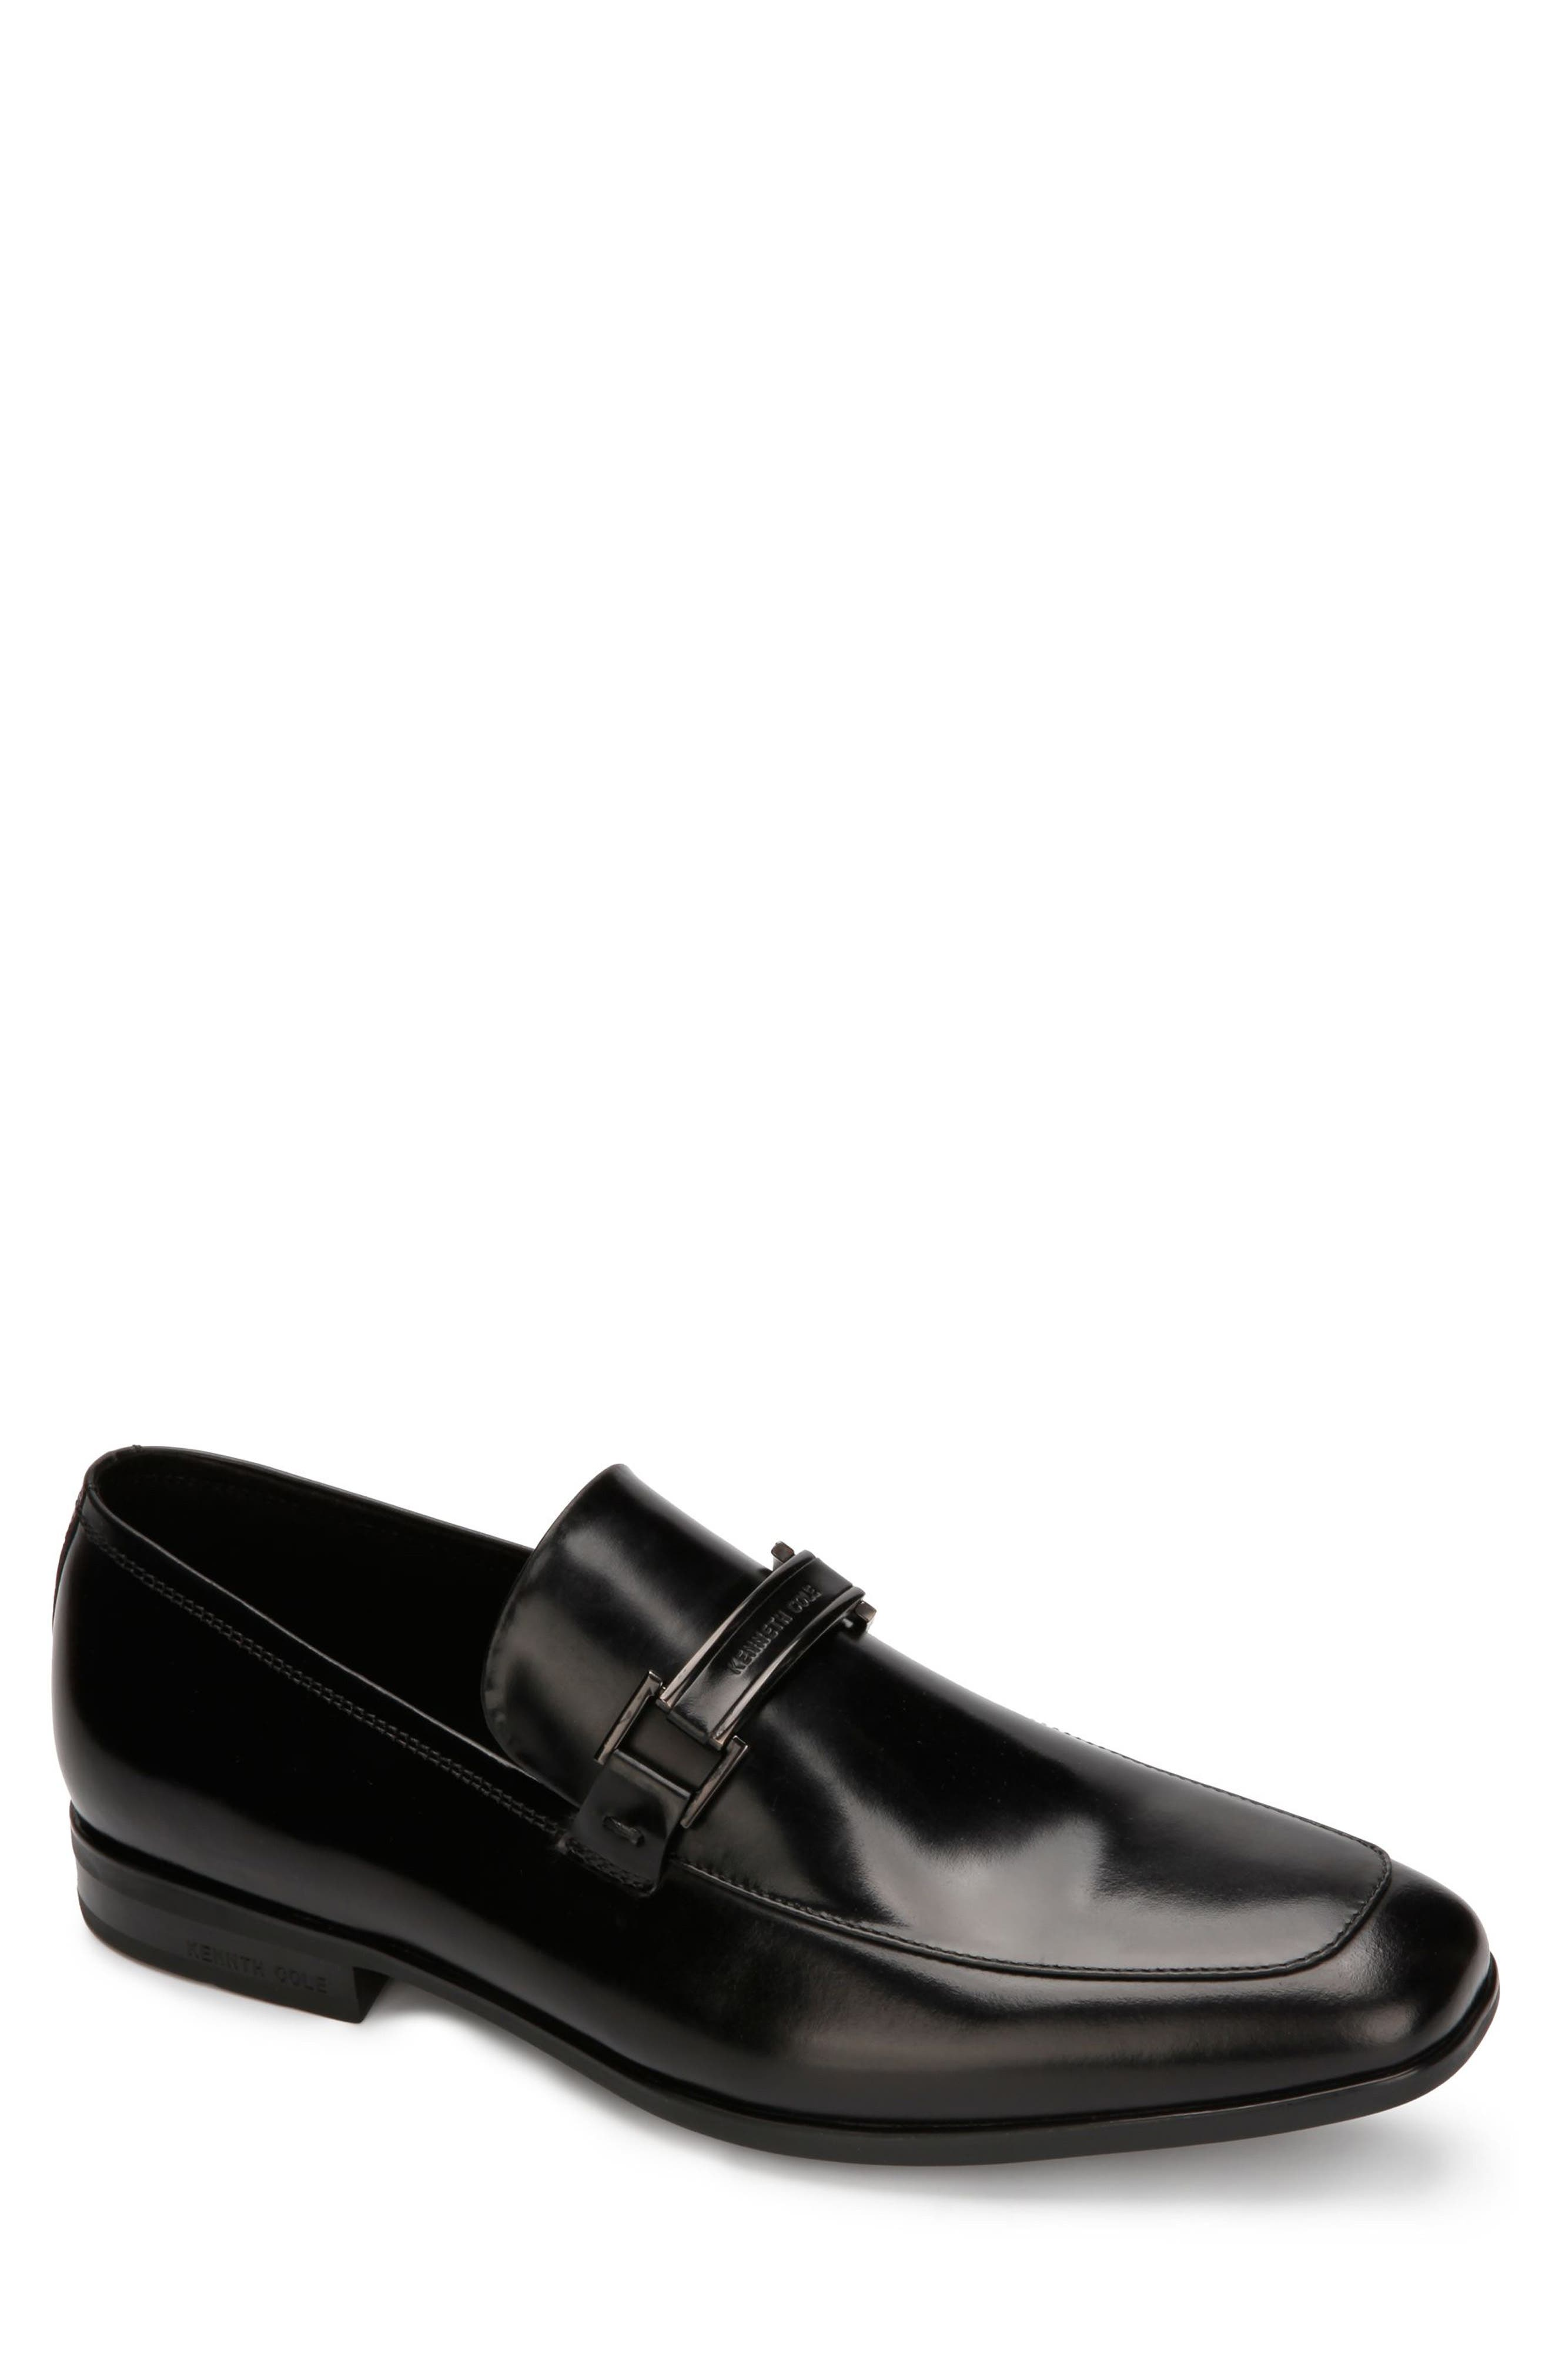 KENNETH COLE NEW YORK Aaron Toe Loafer, Main, color, 001